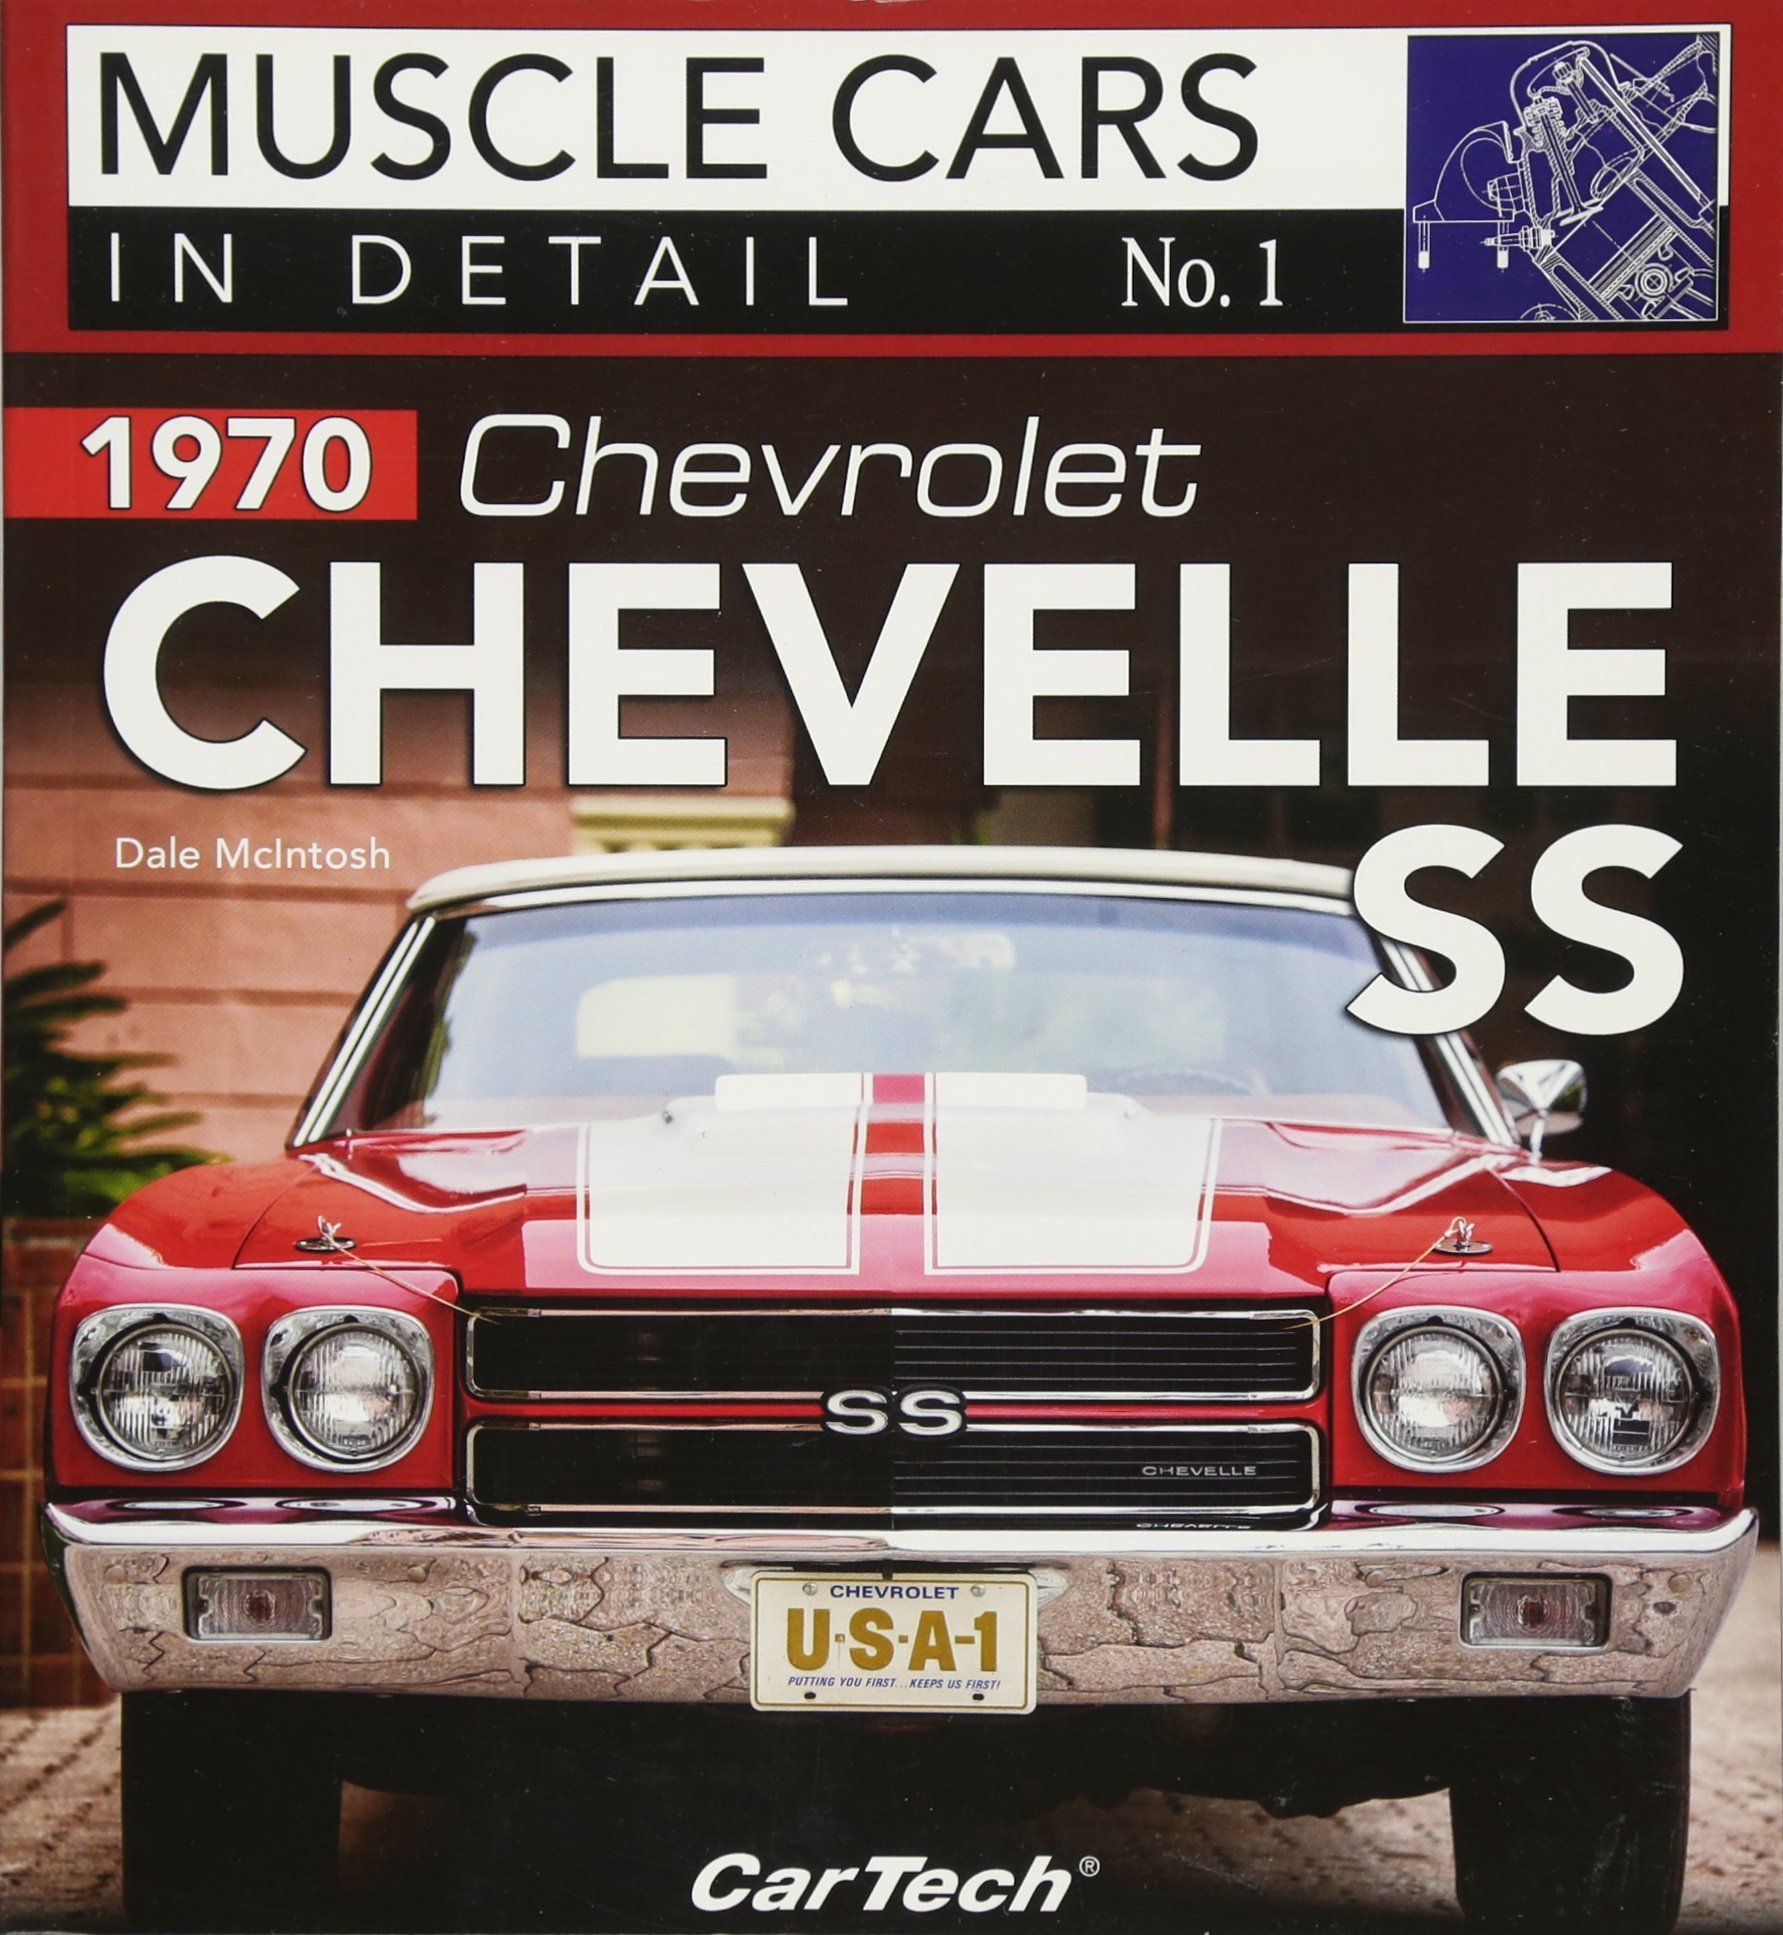 1970 Chevrolet Chevelle SS: Muscle Cars In Detail No. 1: Dale ... on go green cart, first vehicle, first grill, first car, first trolley, wooden cart, car cart, first performance, first 4 wheeler, first home,